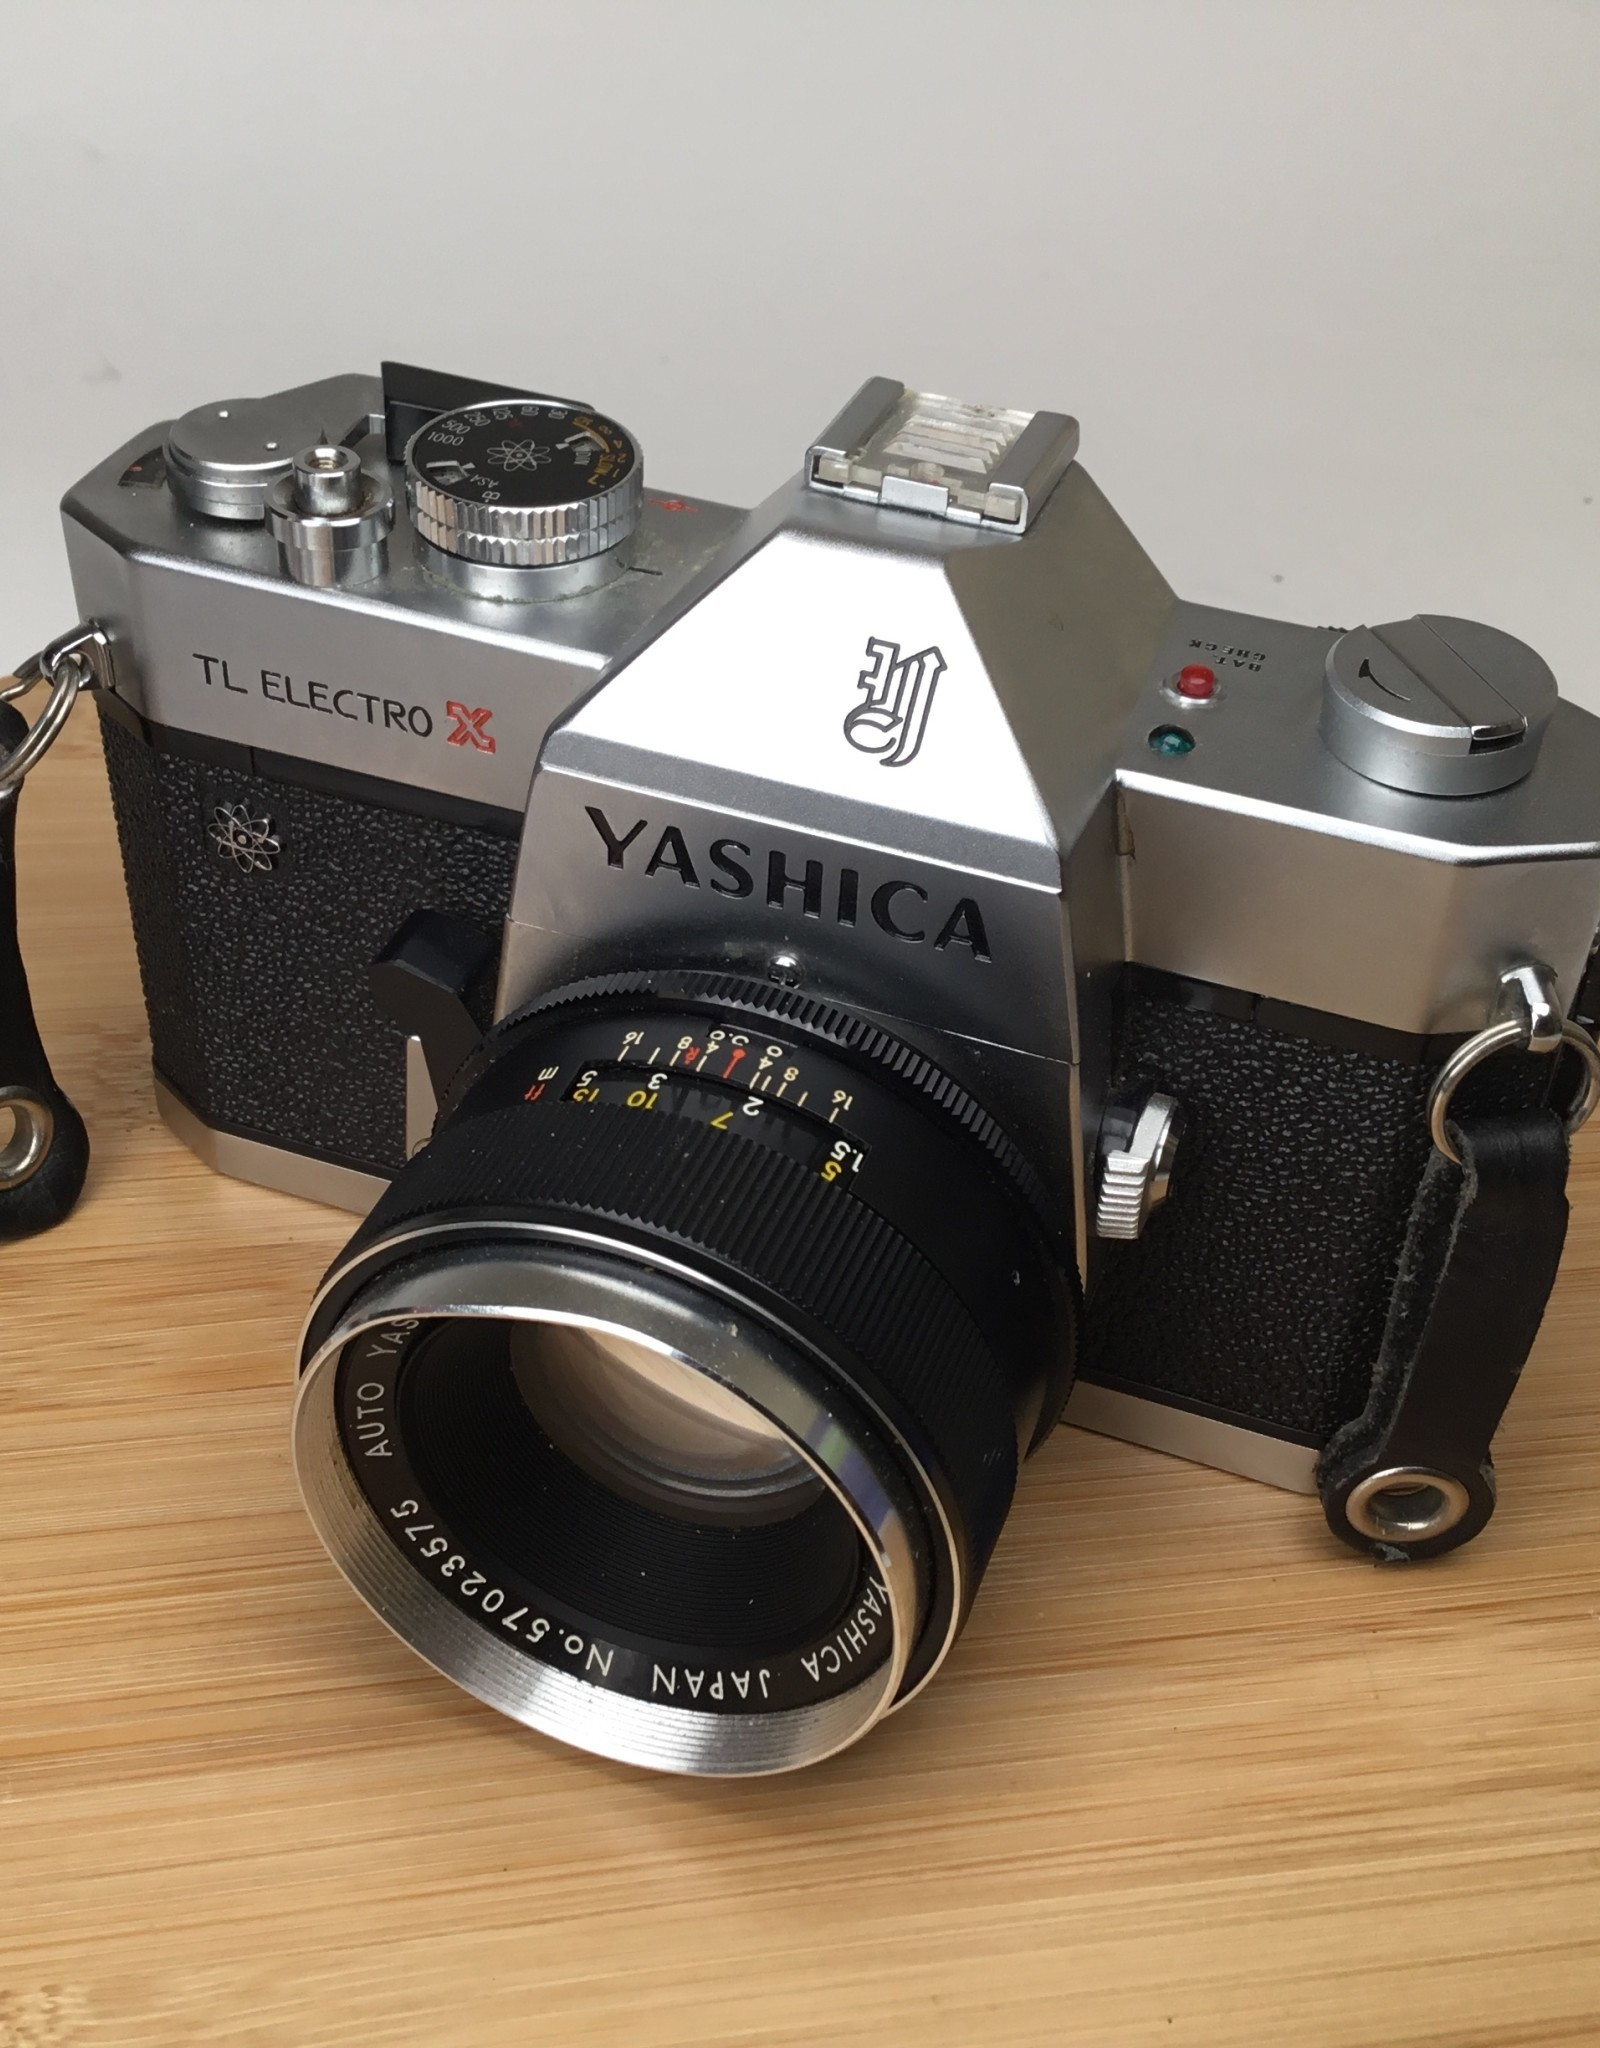 Yashica Yashica TL Electro X with 50mm f1.7 Lens No Meter Used